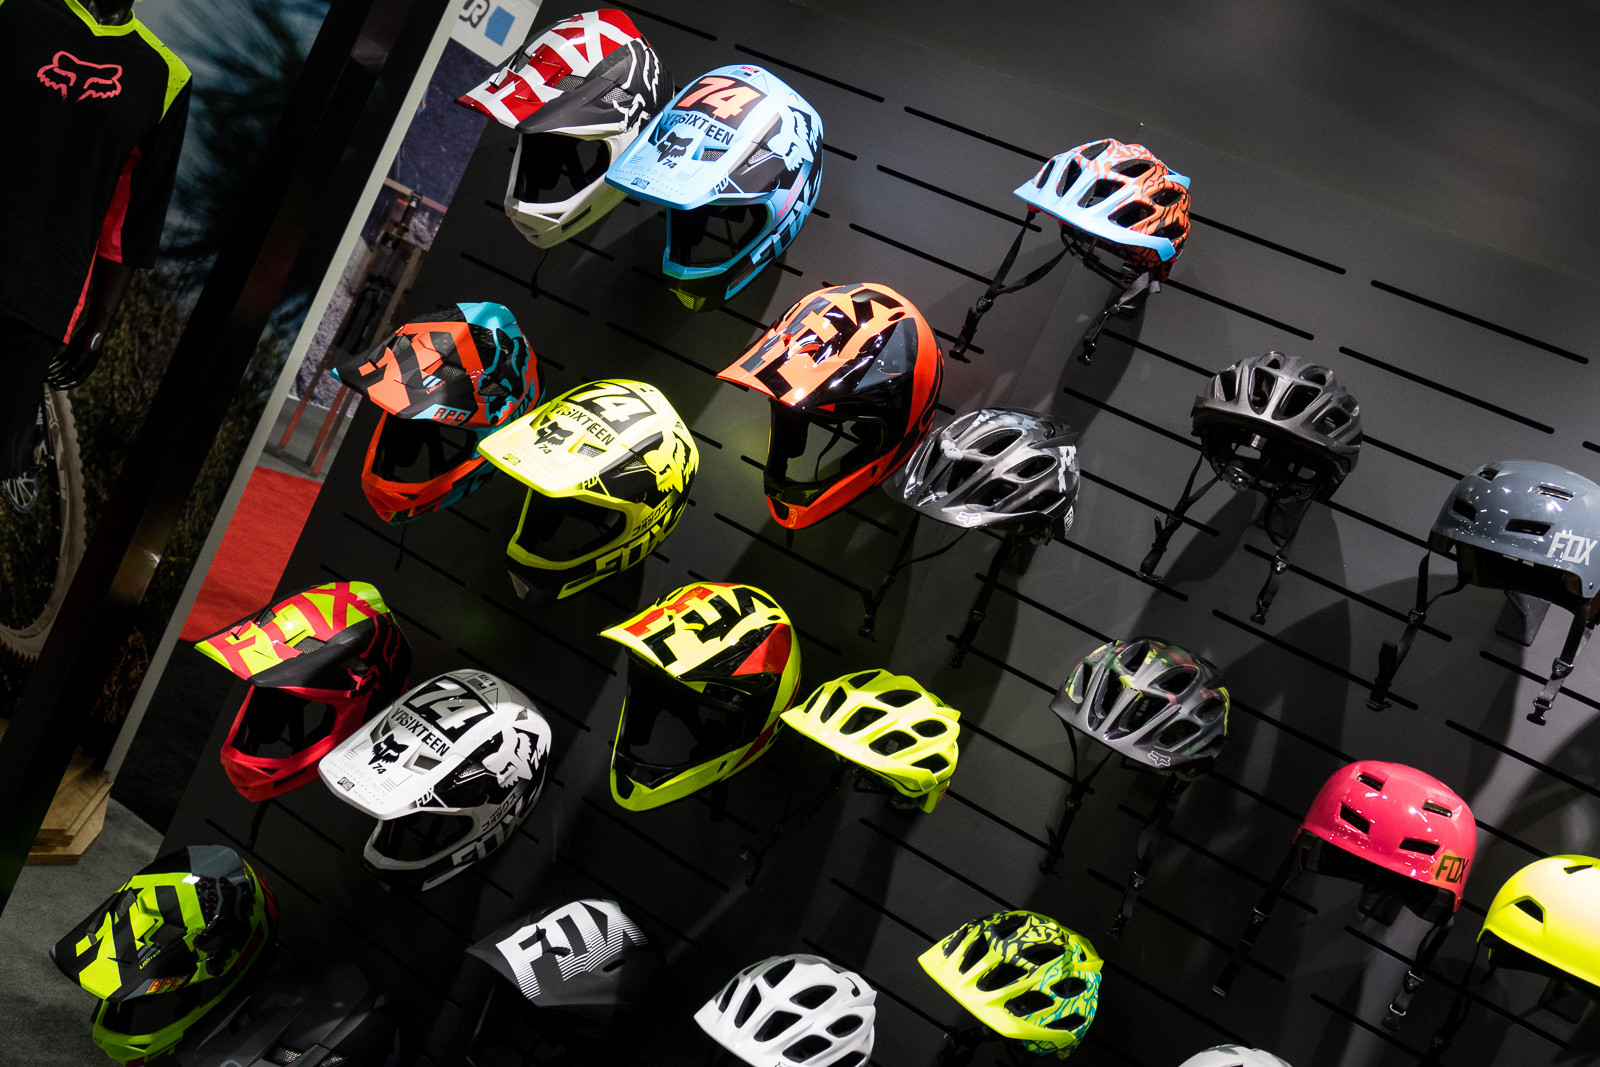 2016 Fox Racing Helmets - 2016 Protective Gear and Apparel at Interbike - Mountain Biking Pictures - Vital MTB